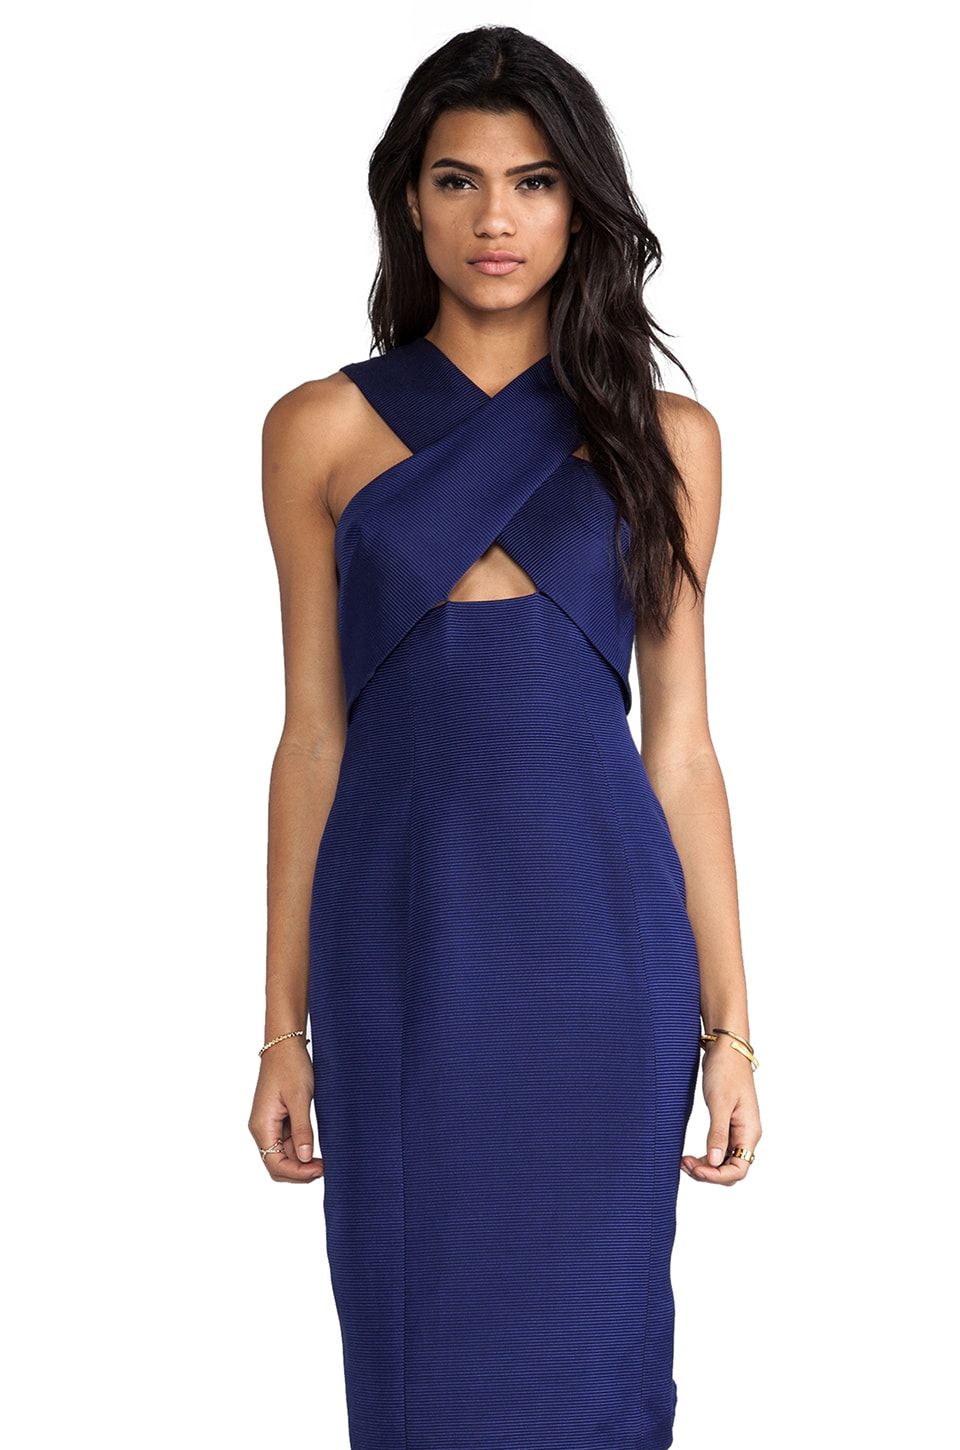 camilla and marc Emulation Dress in Navy